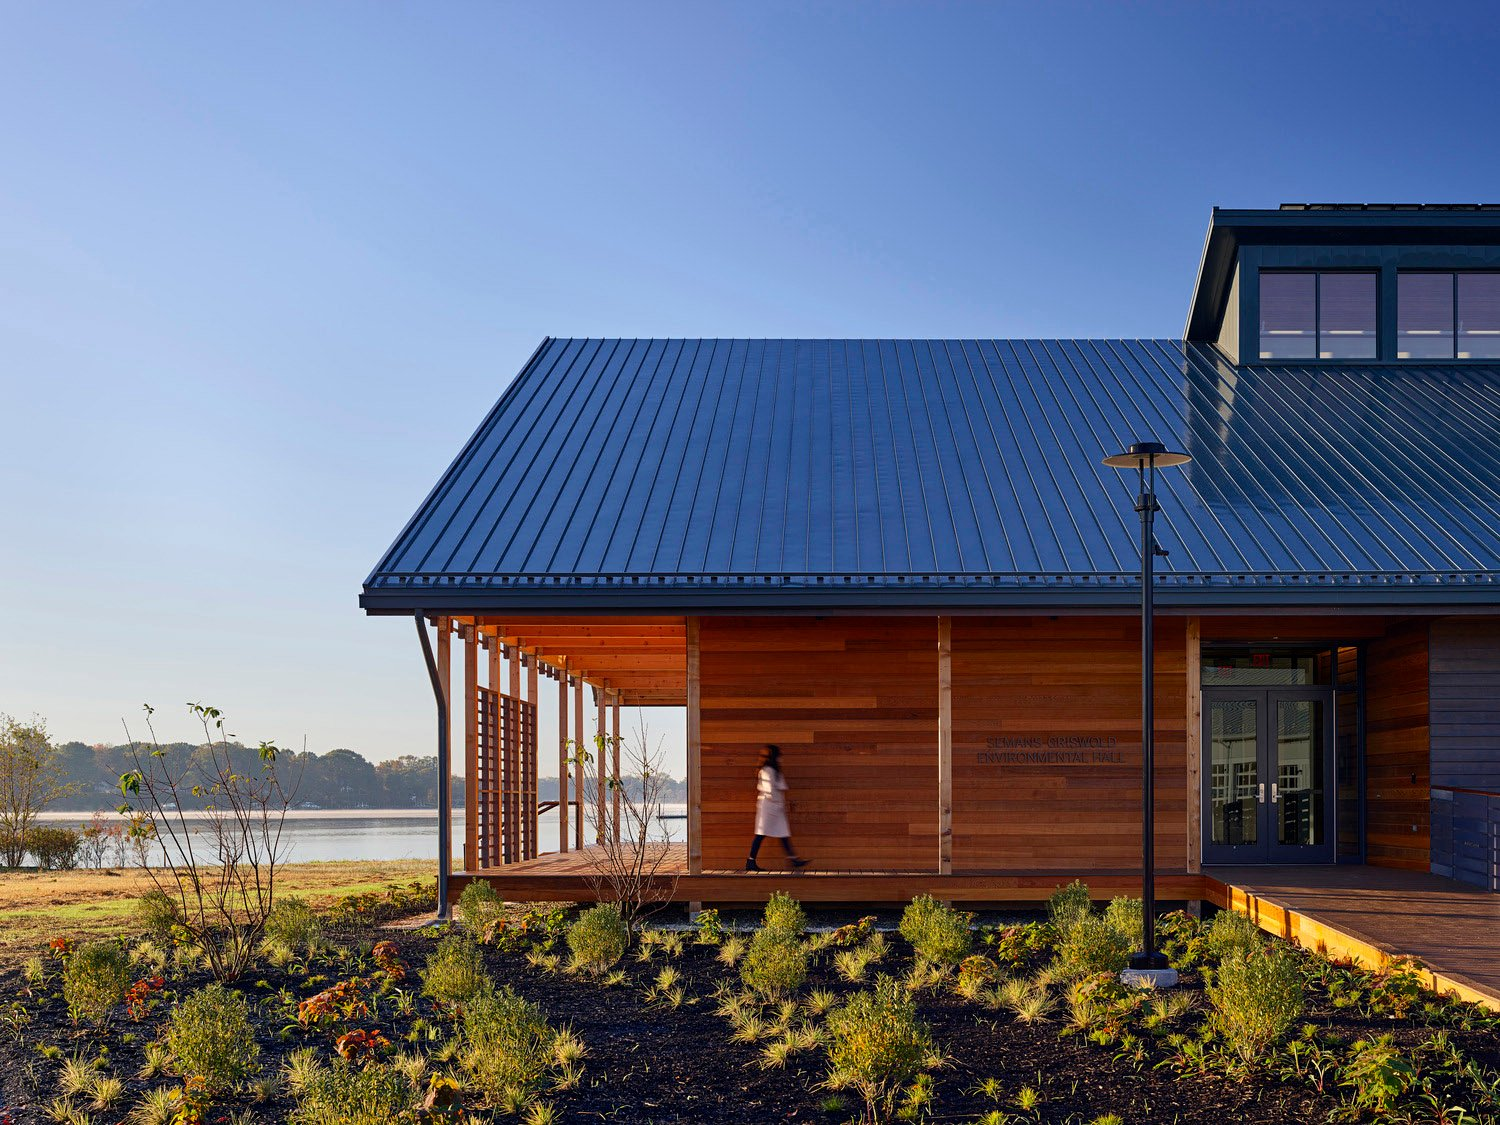 Wood and metal complement the simple form and preserve the local waterfront vernacular ©Tom Holdsworth